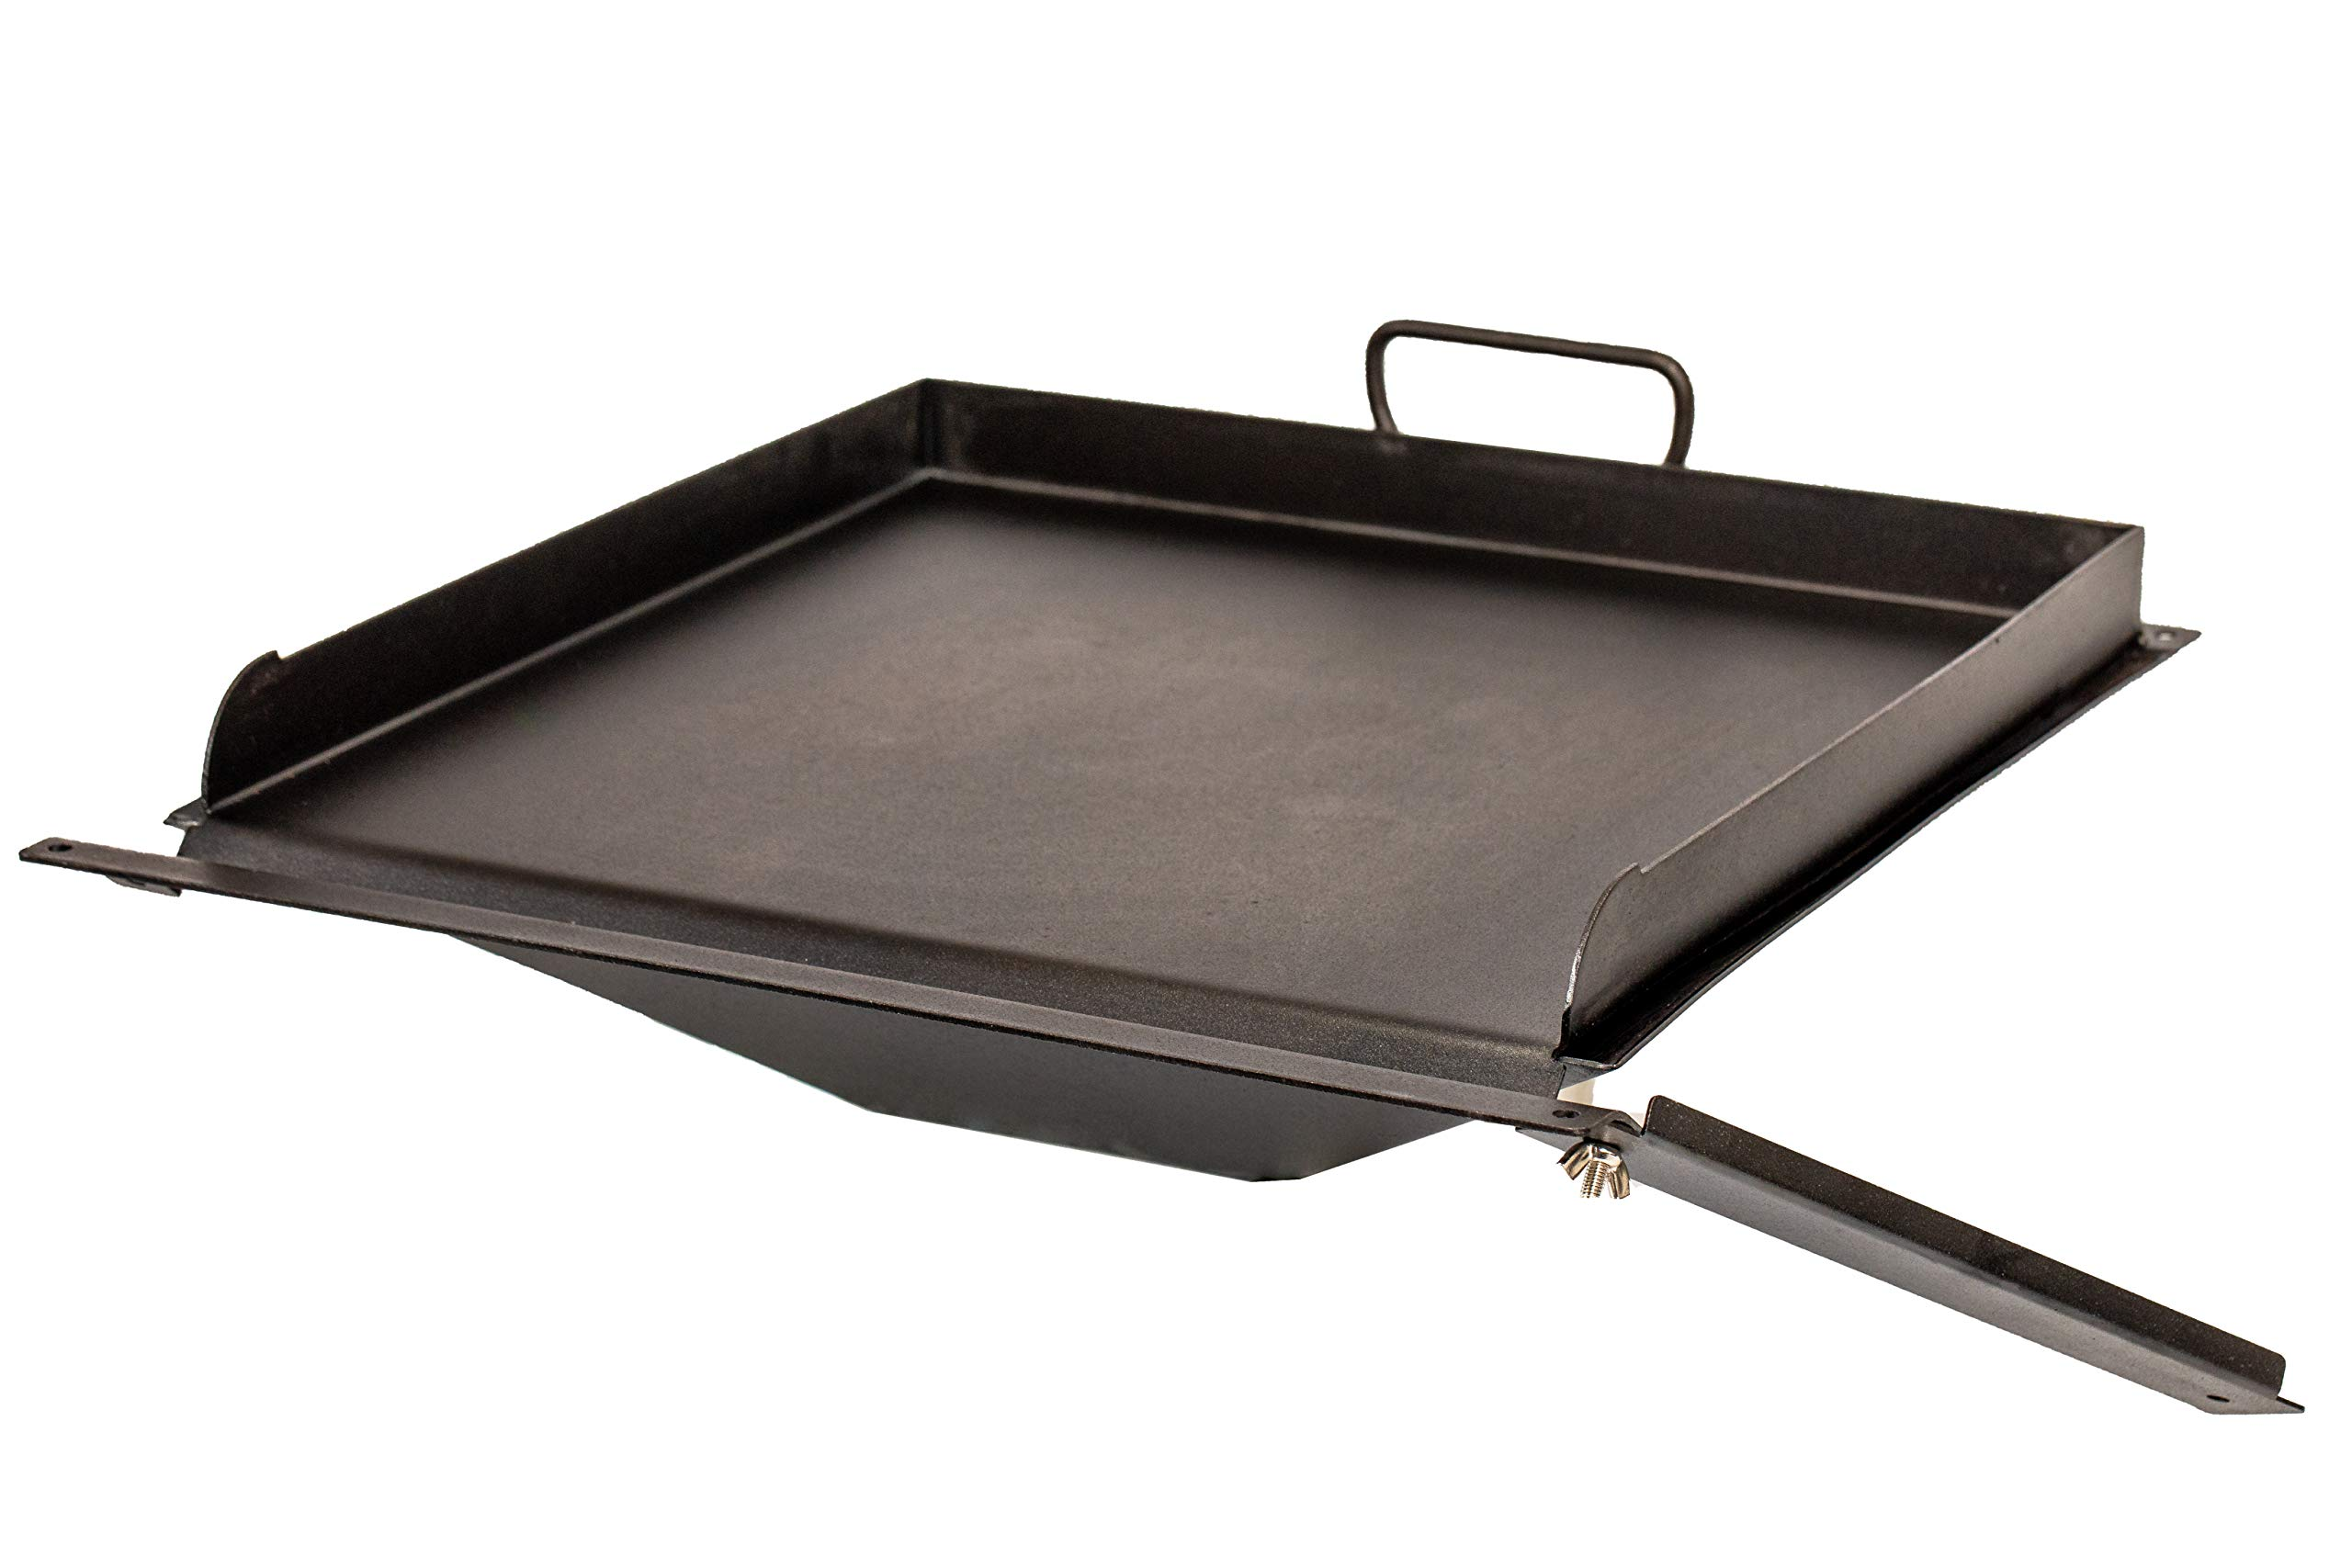 Griddle Hack | Breakfast, Stir Fry, Smash Burgers, Reverse Sear, and more on your pellet grill | Griddle Insert Accessory by BBQ Hack by BBQ Hack